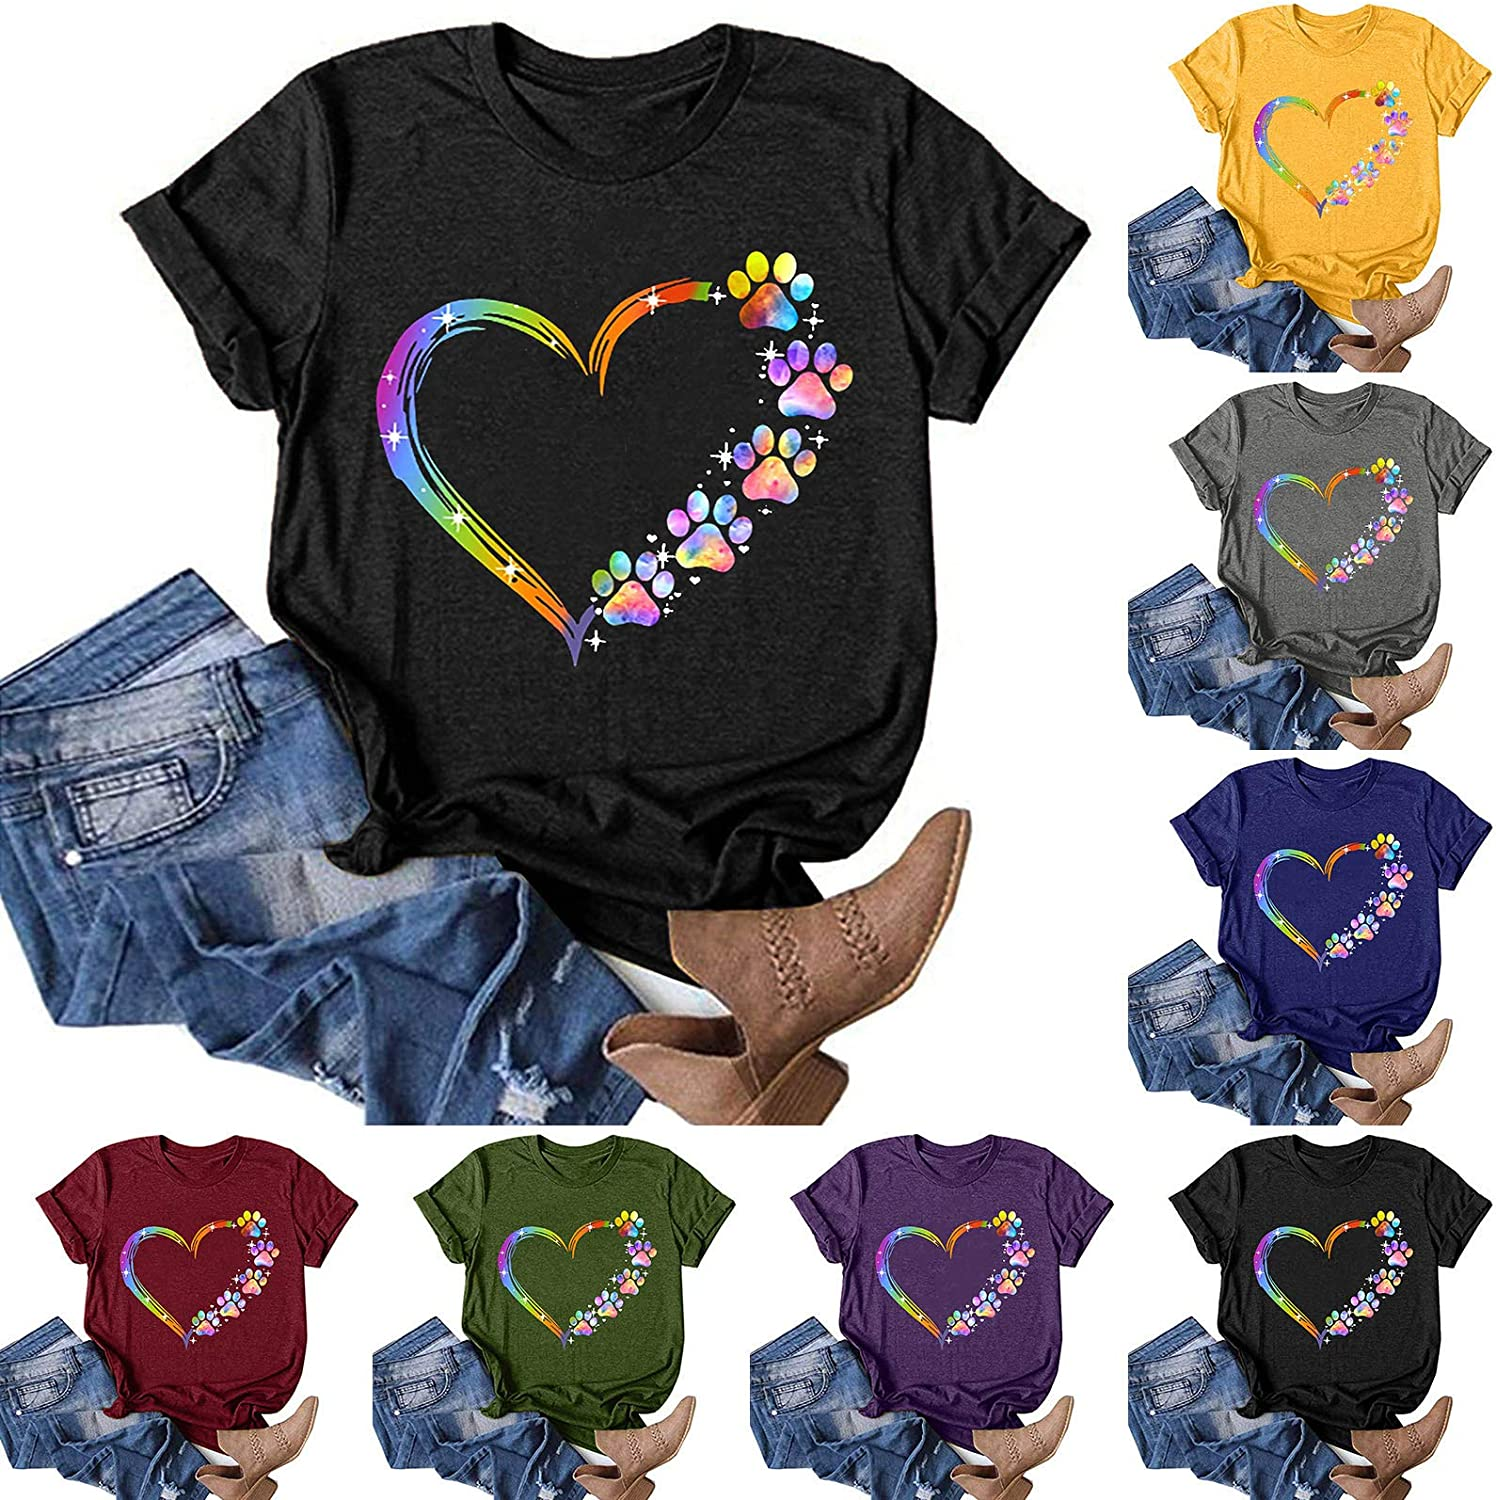 NIANTIE Workout Tops for Women, Women's Heart-Shaped Graphic Shirts Casual Summer Tops Sleeveless Holiday Tee Shirts Blouses